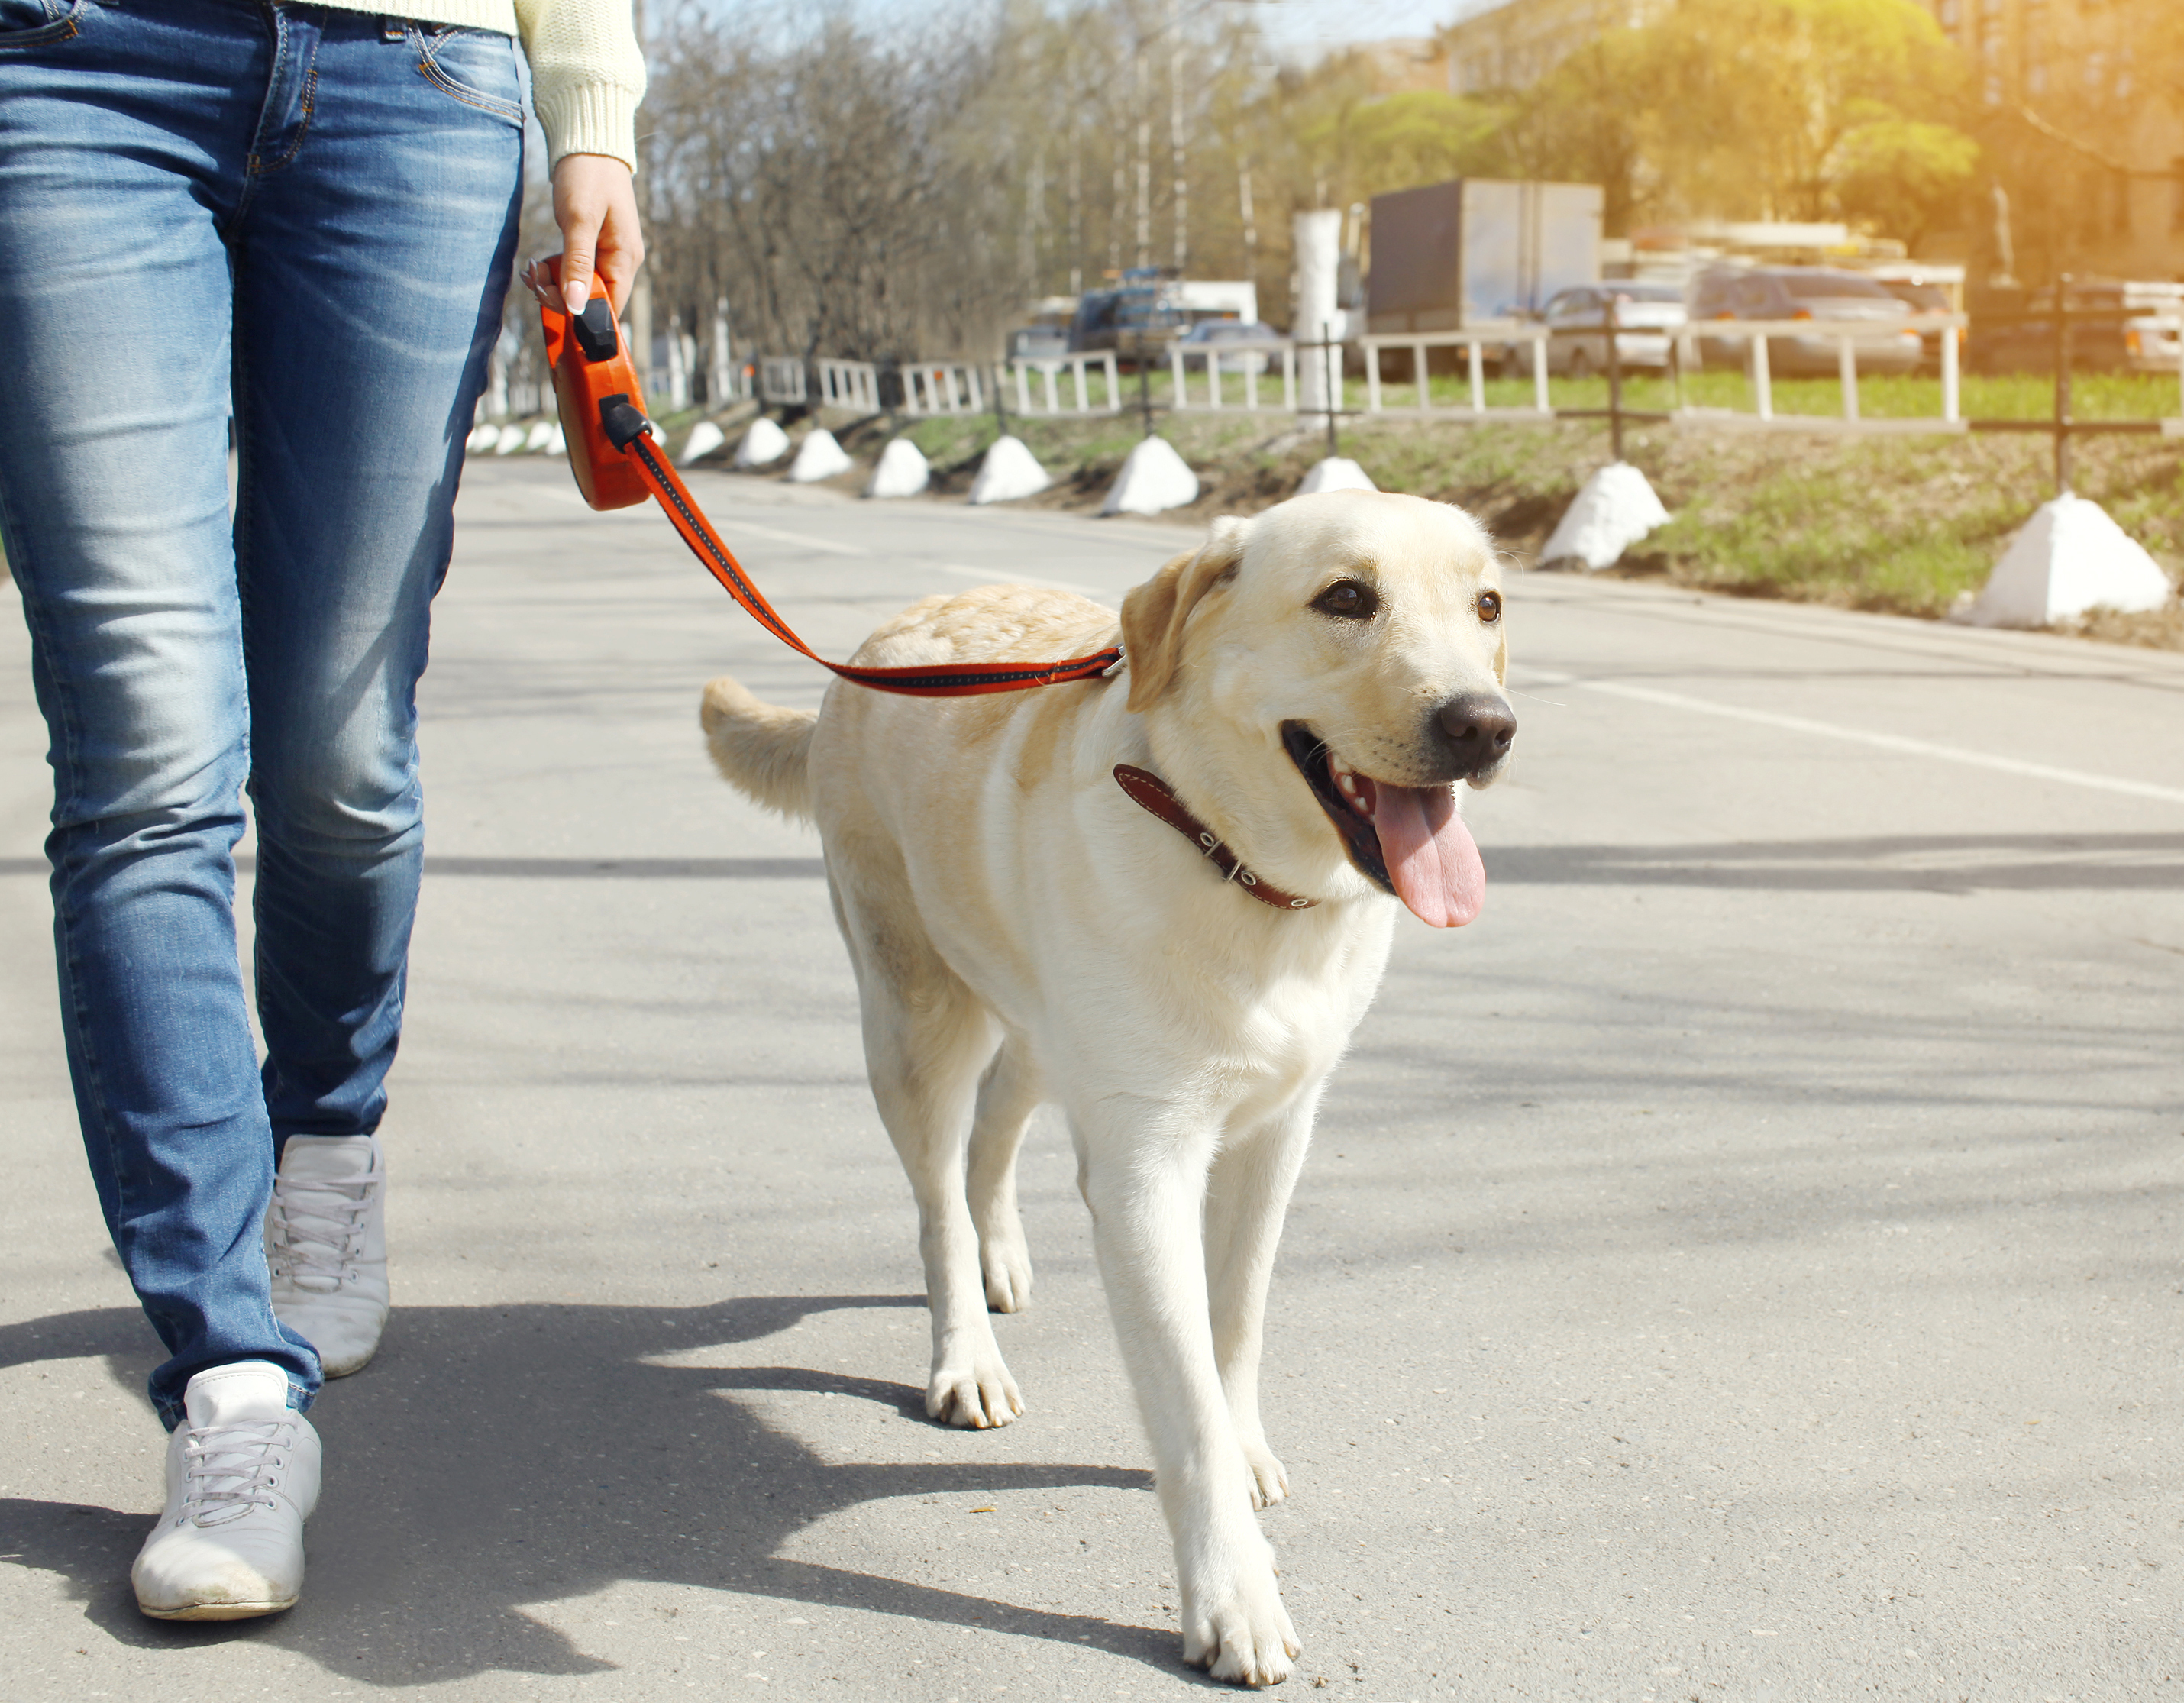 Let's get outside: Train and Walk Your Dog Month